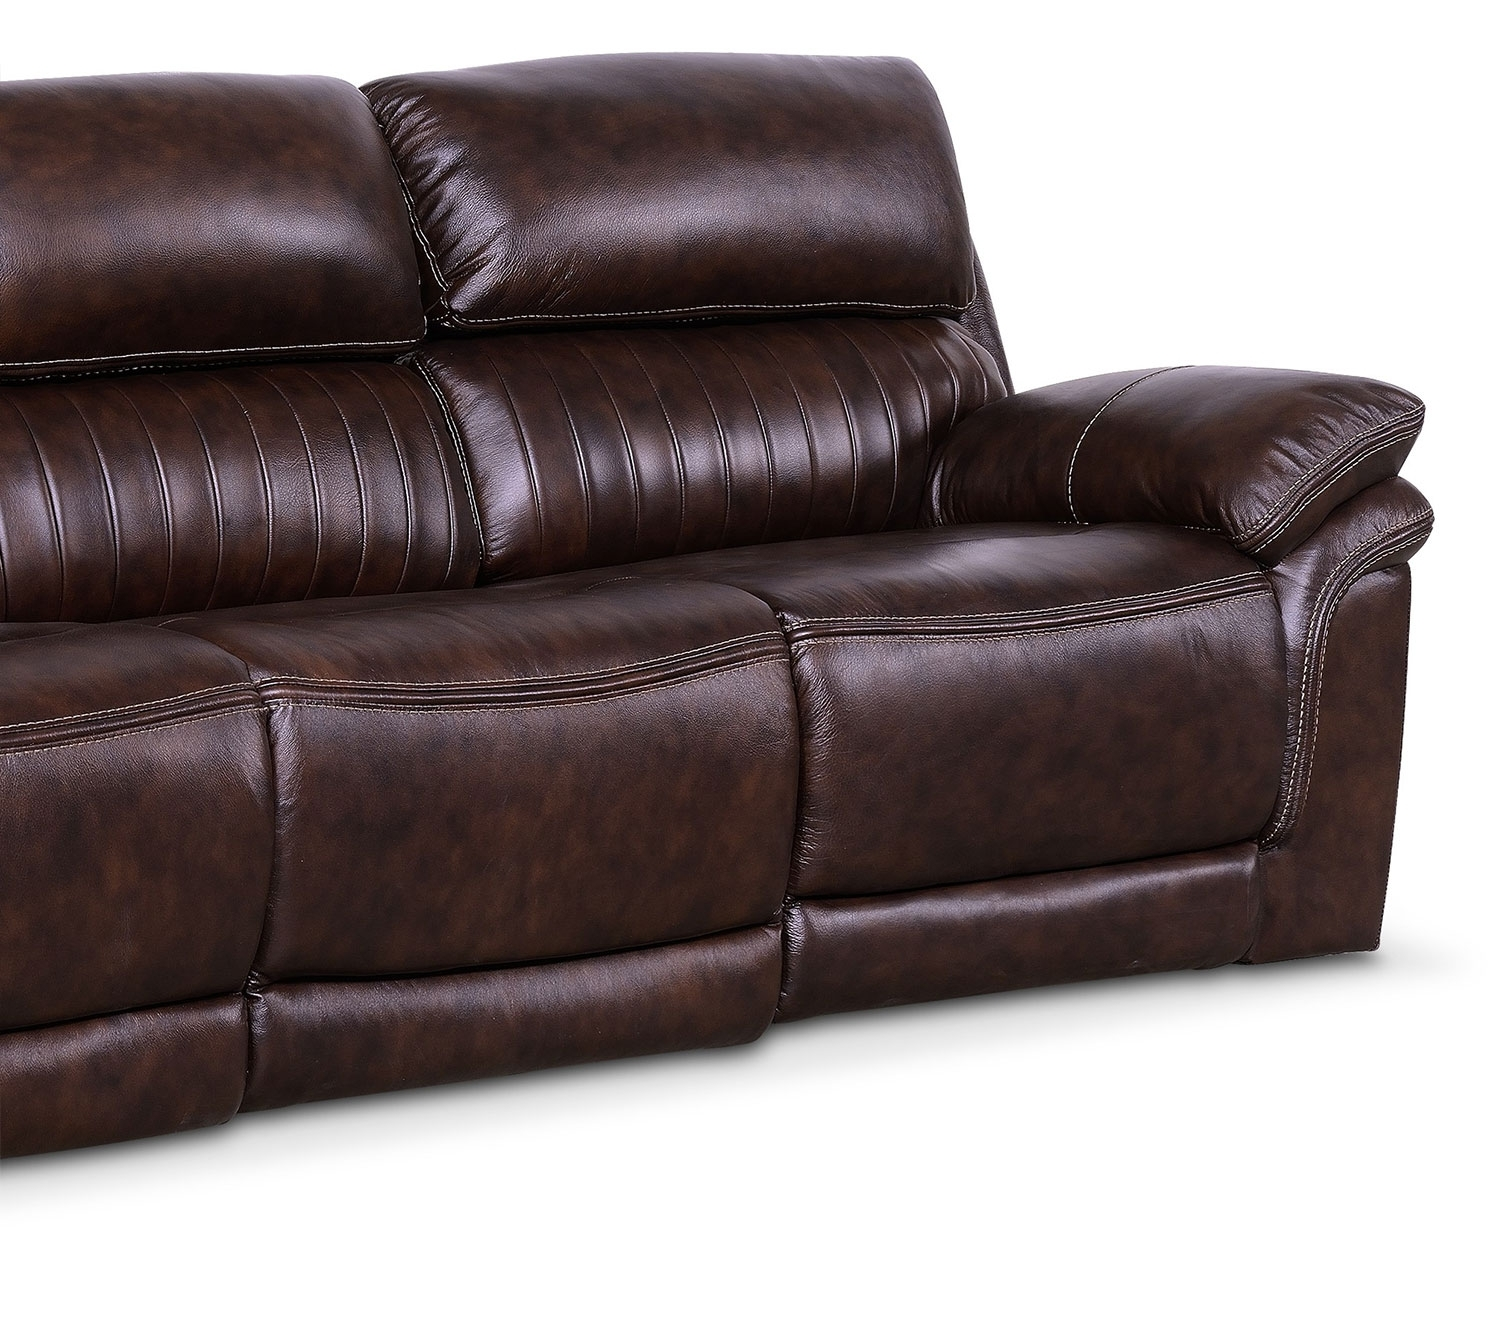 Monterey 3 Piece Power Reclining Sofa – Chocolate | American With Regard To Recliner Sofas (View 6 of 10)